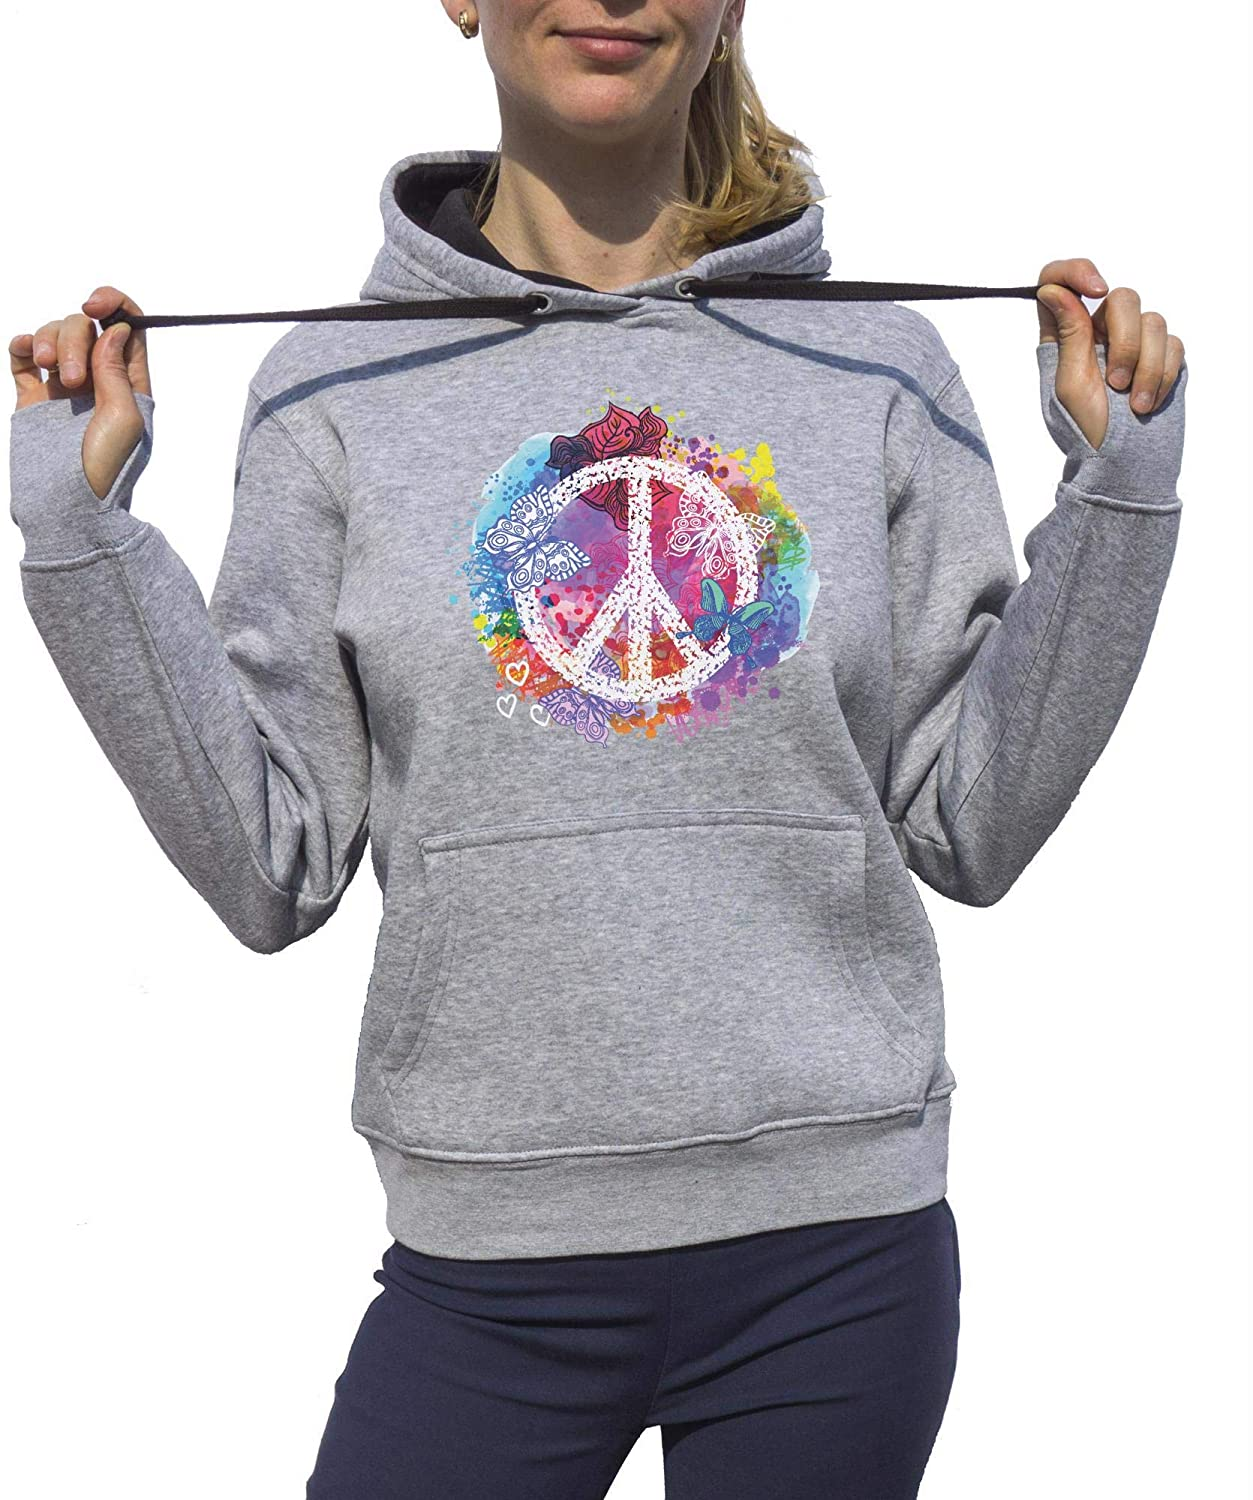 KrisTalas Sudadera con Capucha Mujer Flower Power Freedom Clothing Peace Hippie Thematic Outfit Dress Code 60s Clothing 70s Clothing Gris: Amazon.es: Ropa ...